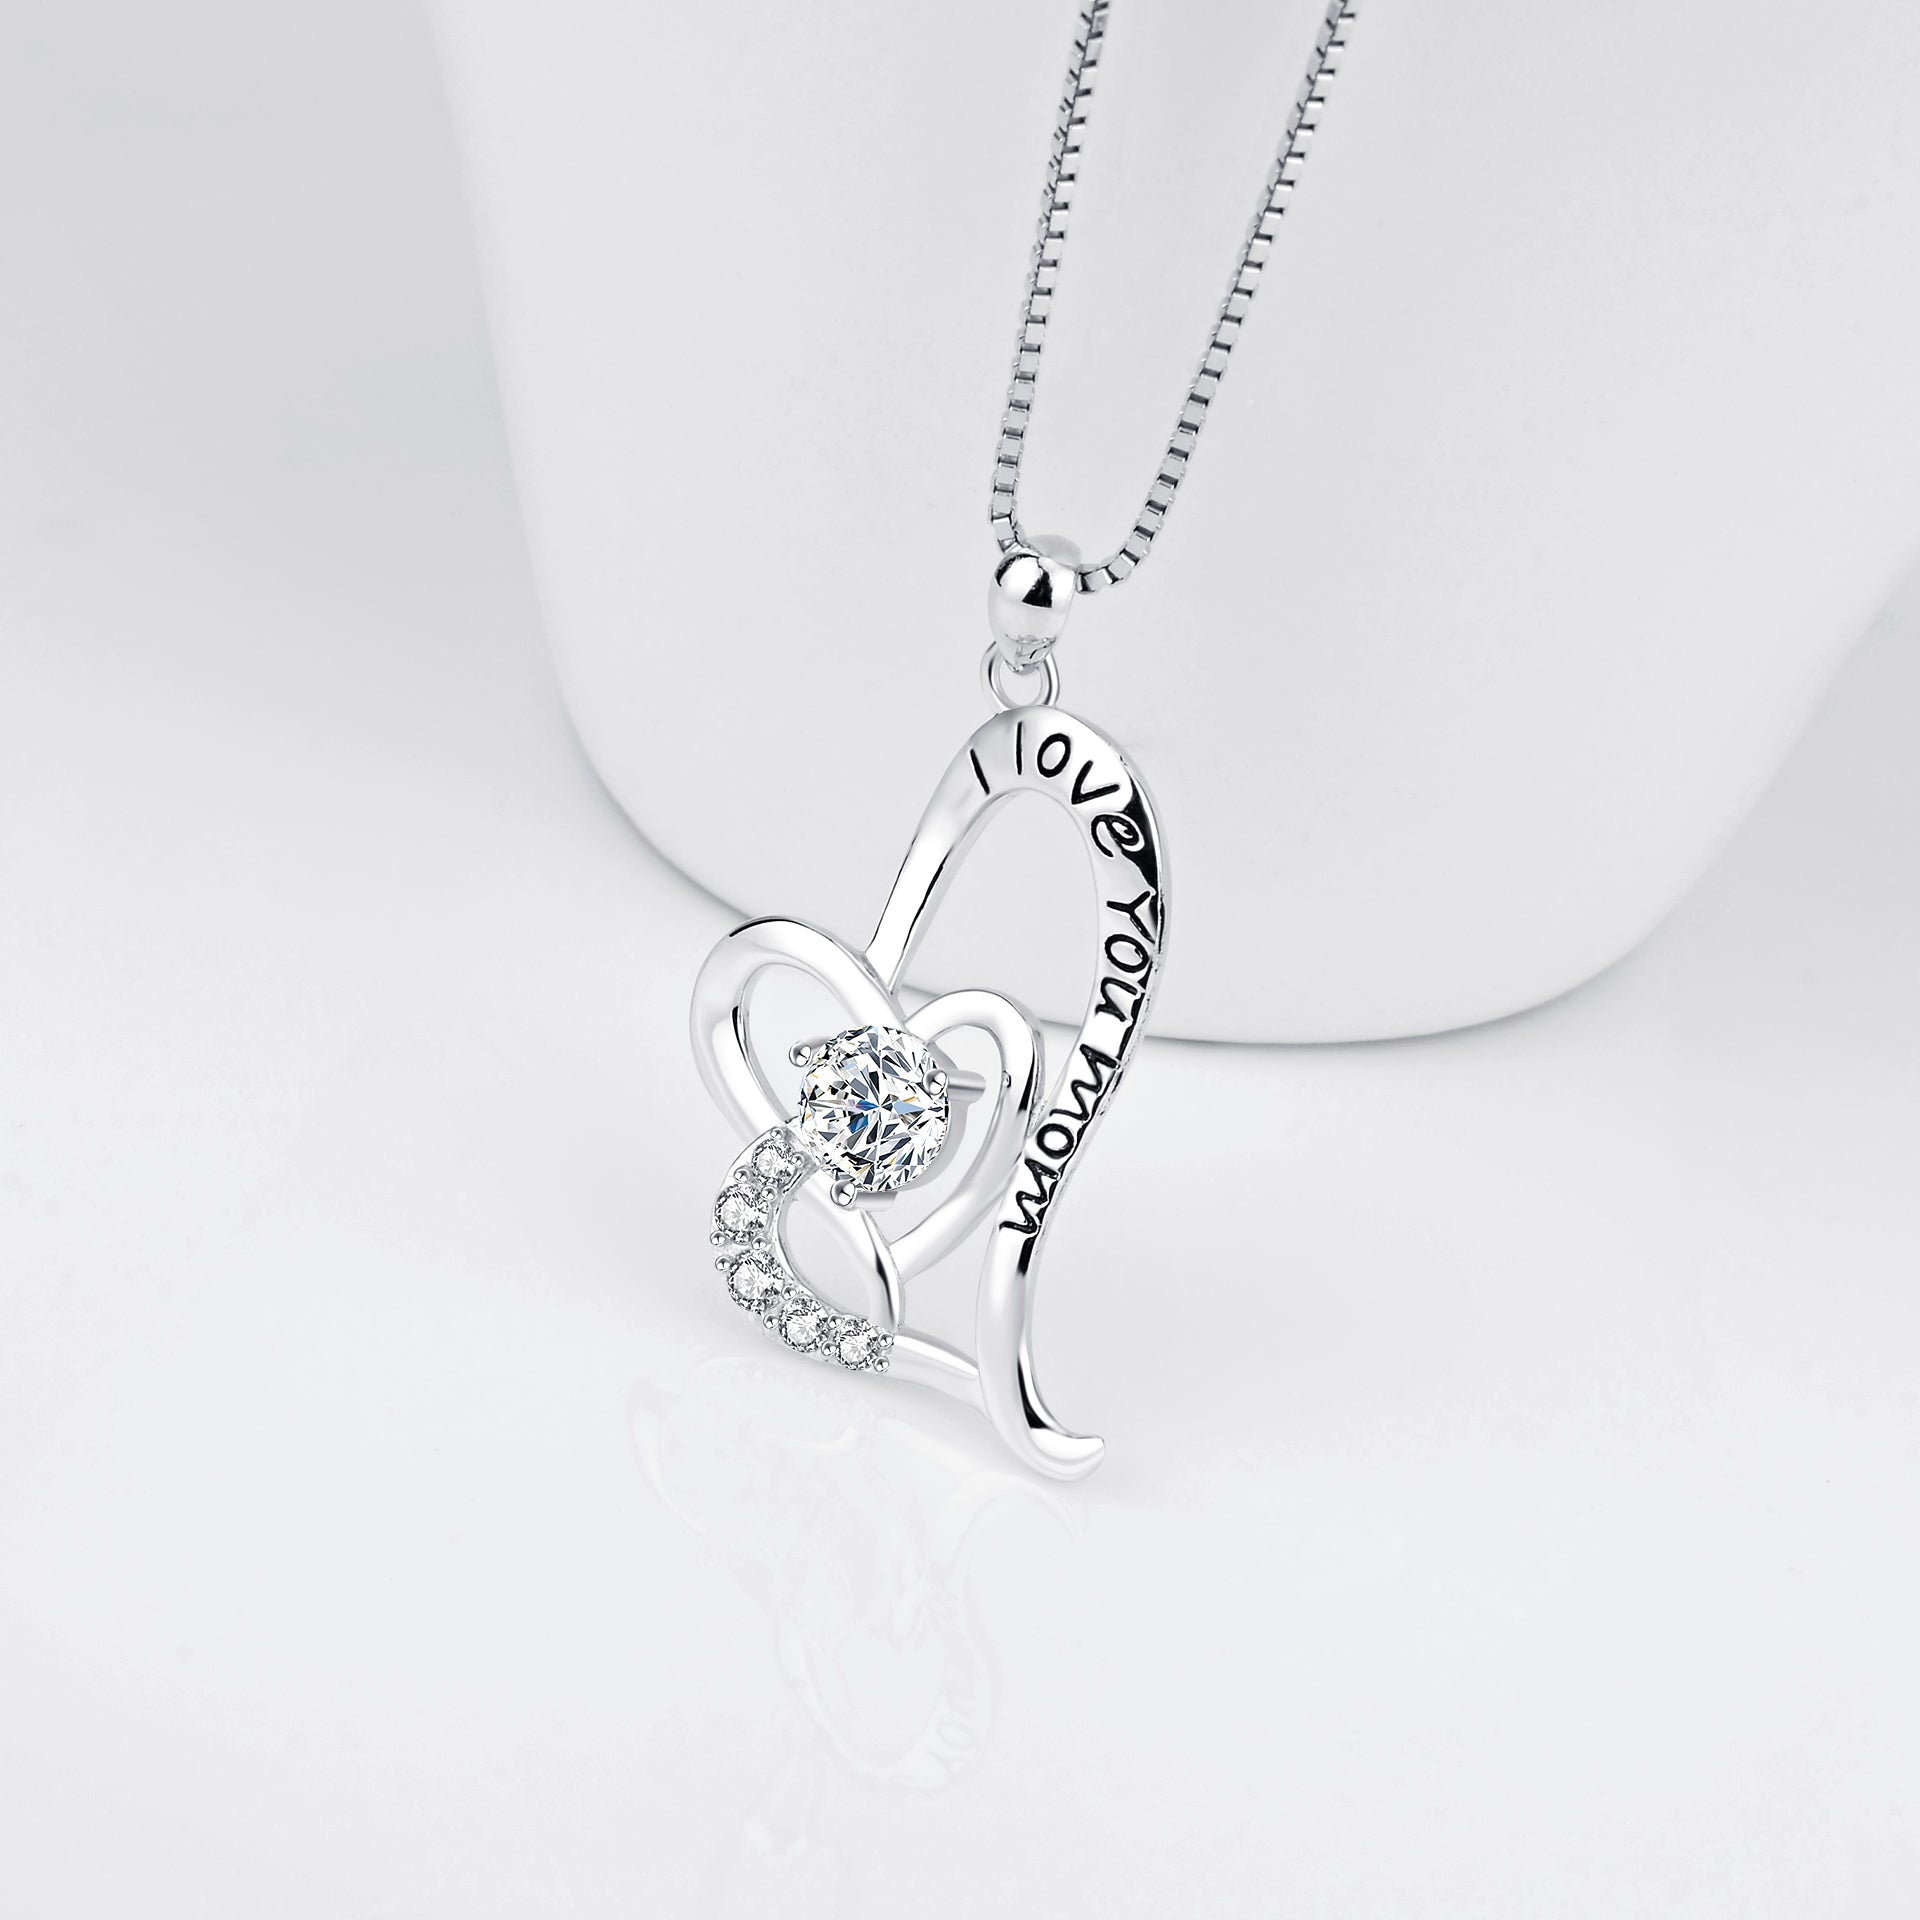 Mother's Day Necklace I Love Mom Engraved Zirconia Necklace